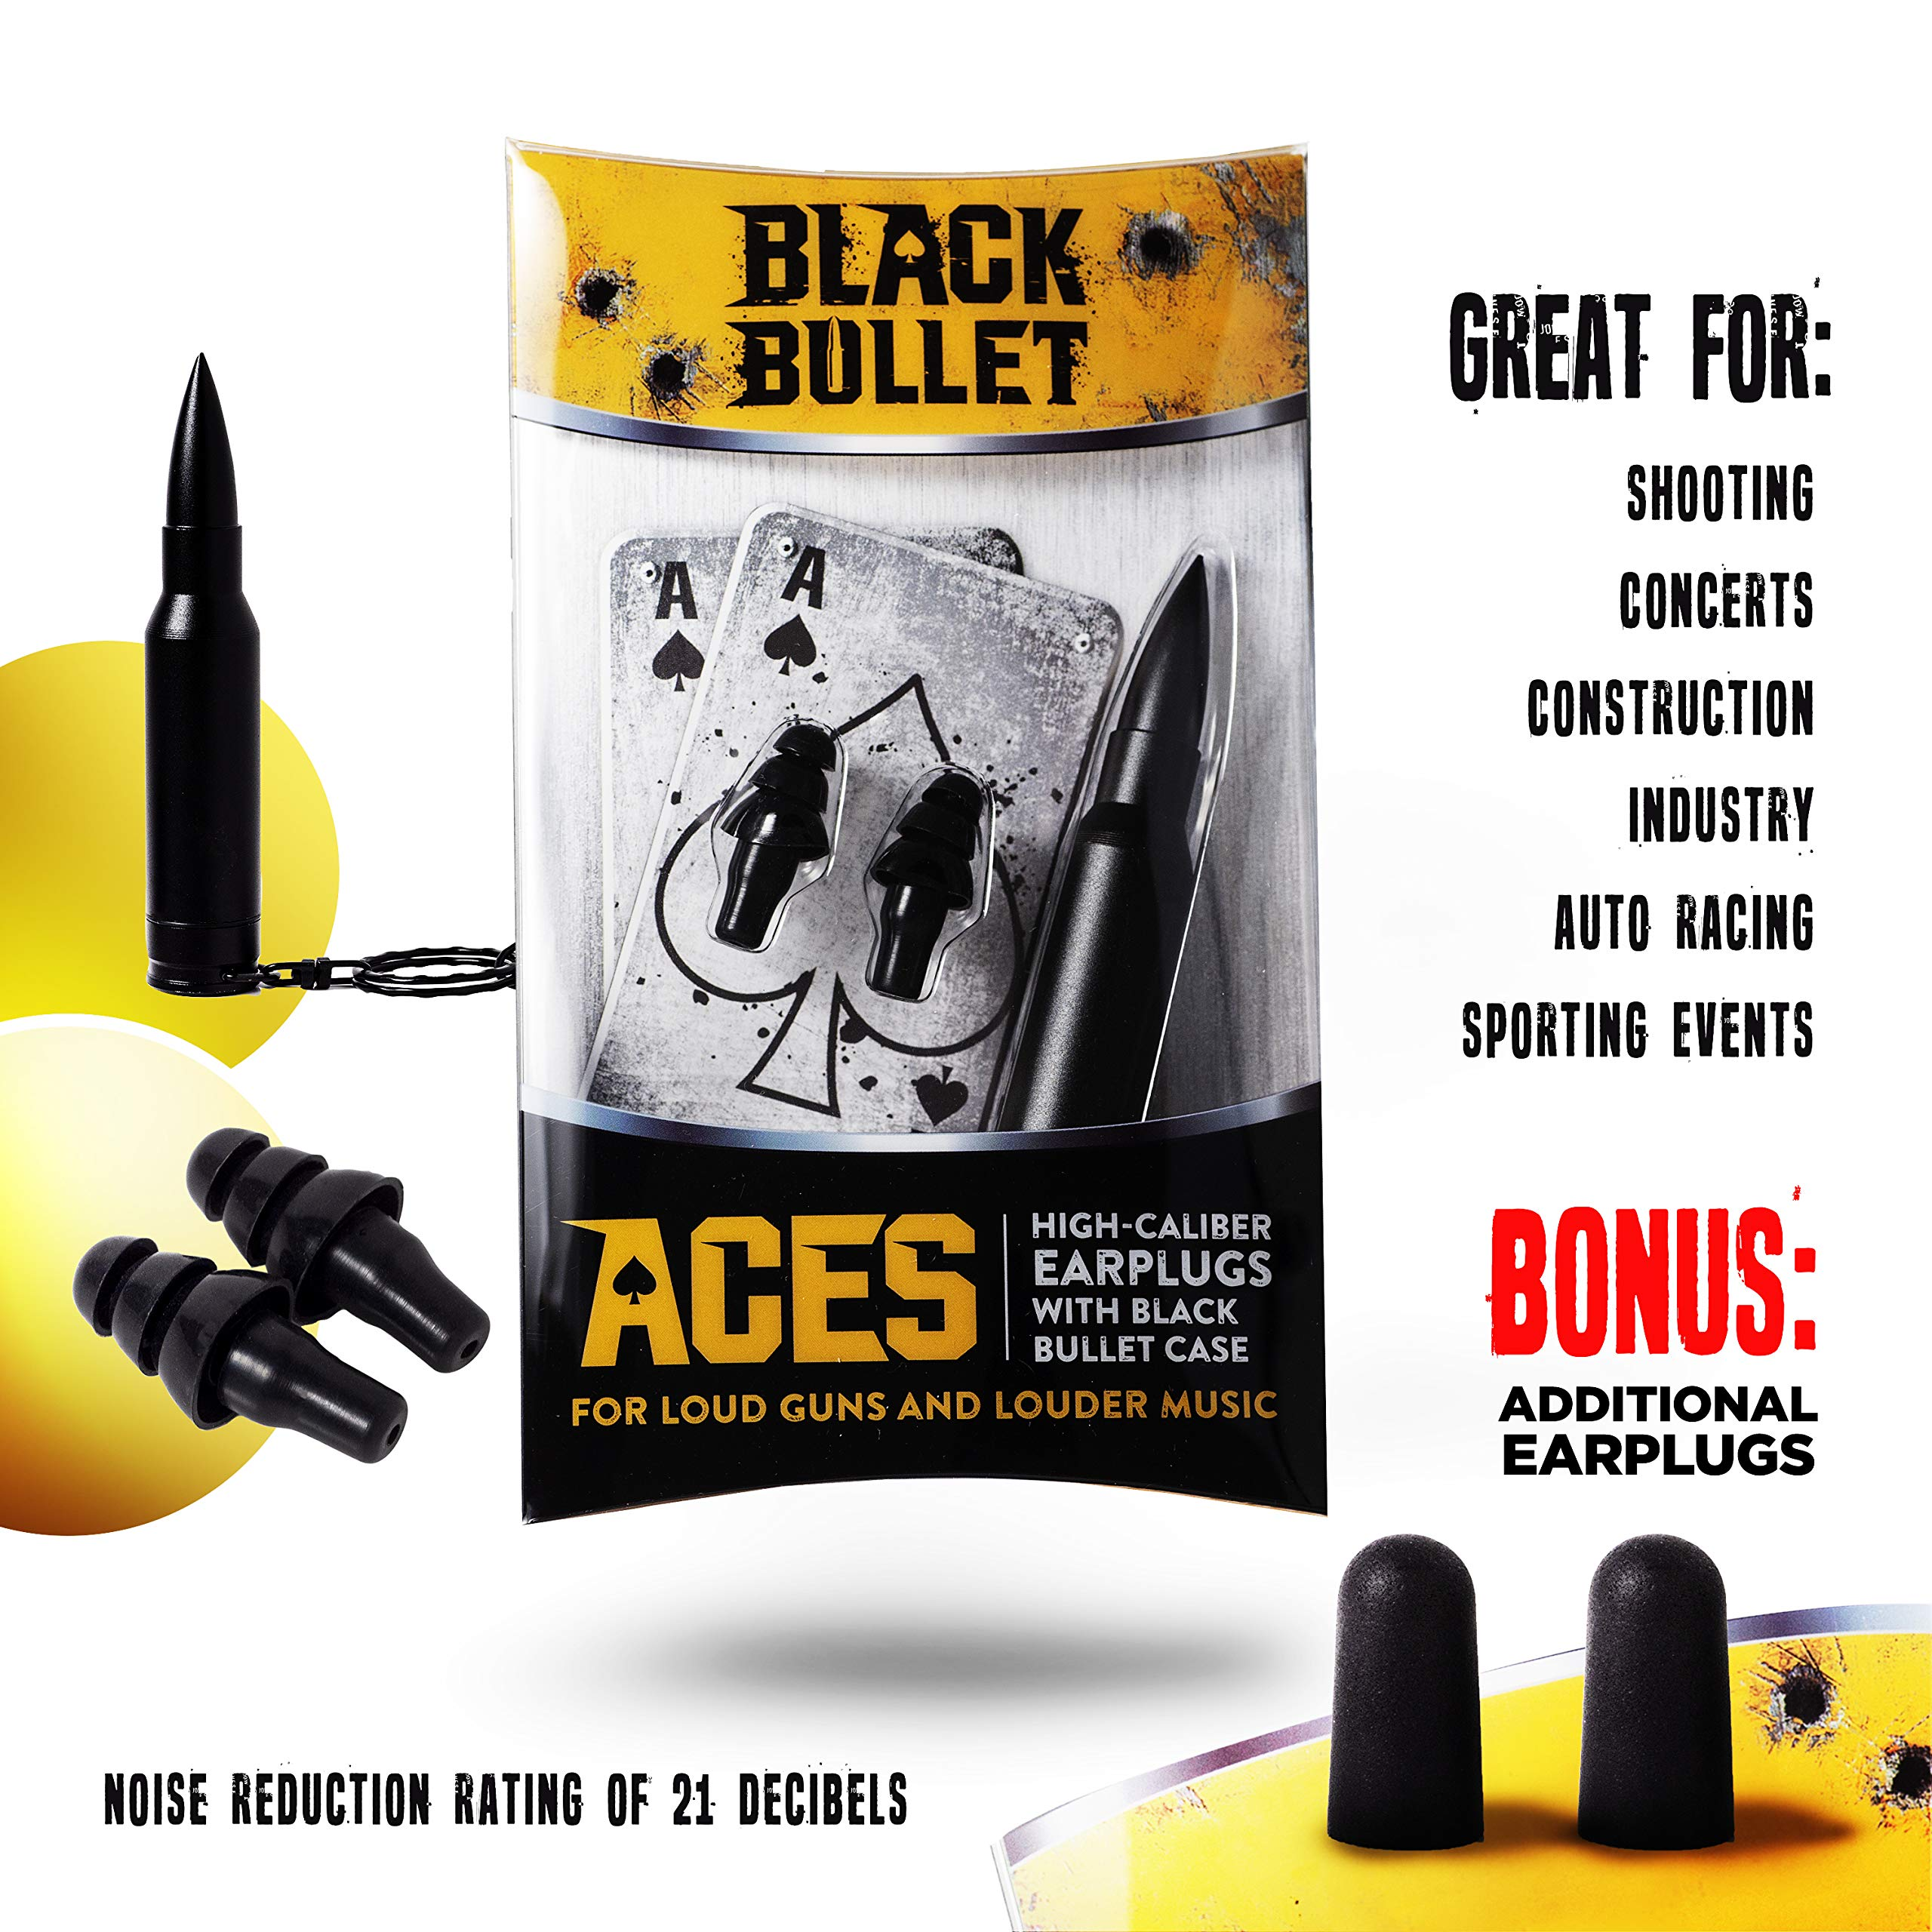 Black Bullet Noise Cancelling High-Fidelity Ear Plugs | Earplugs for Concerts and Musicians | Ear Protection for Shooters and Shooting Guns | Discrete, Low Profile | ACES by Black Bullet